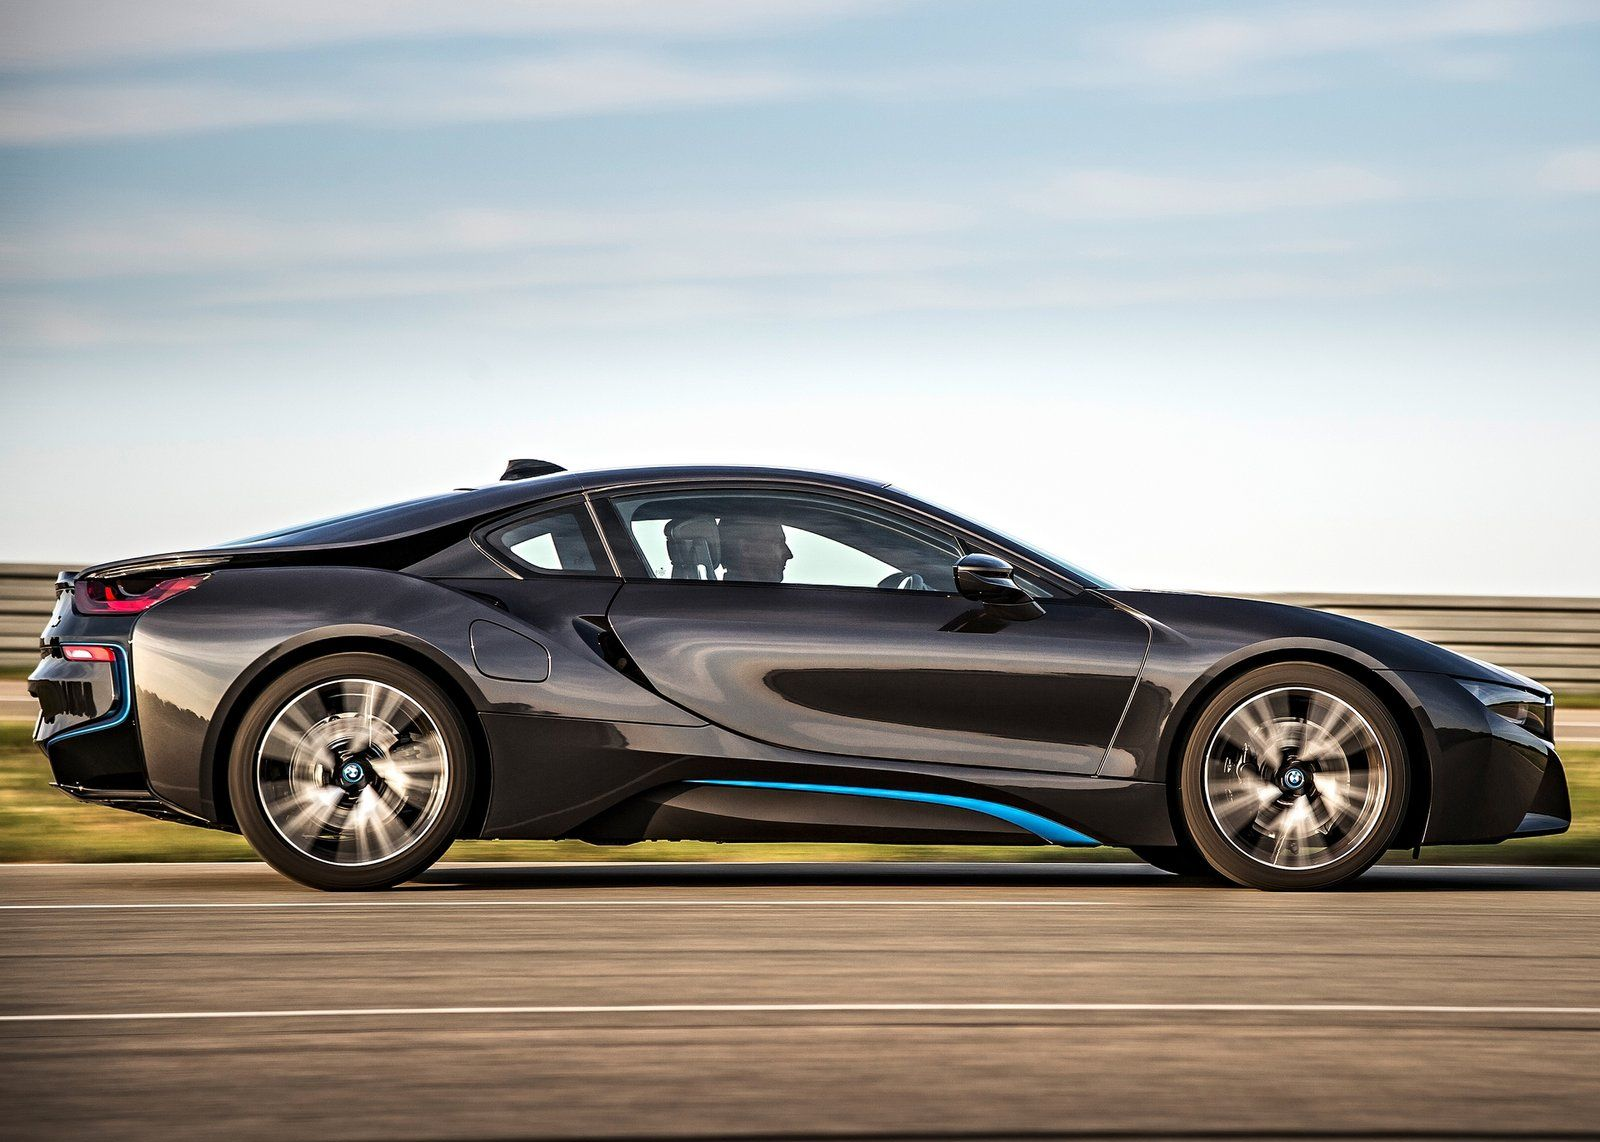 2015 bmw i8 coupe price | Tags : 2015 bmw i8 commercial, 2015 bmw i8 coupe, 2015 bmw i8 for sale, 2015 bmw i8 price, 2015 bmw i8 series